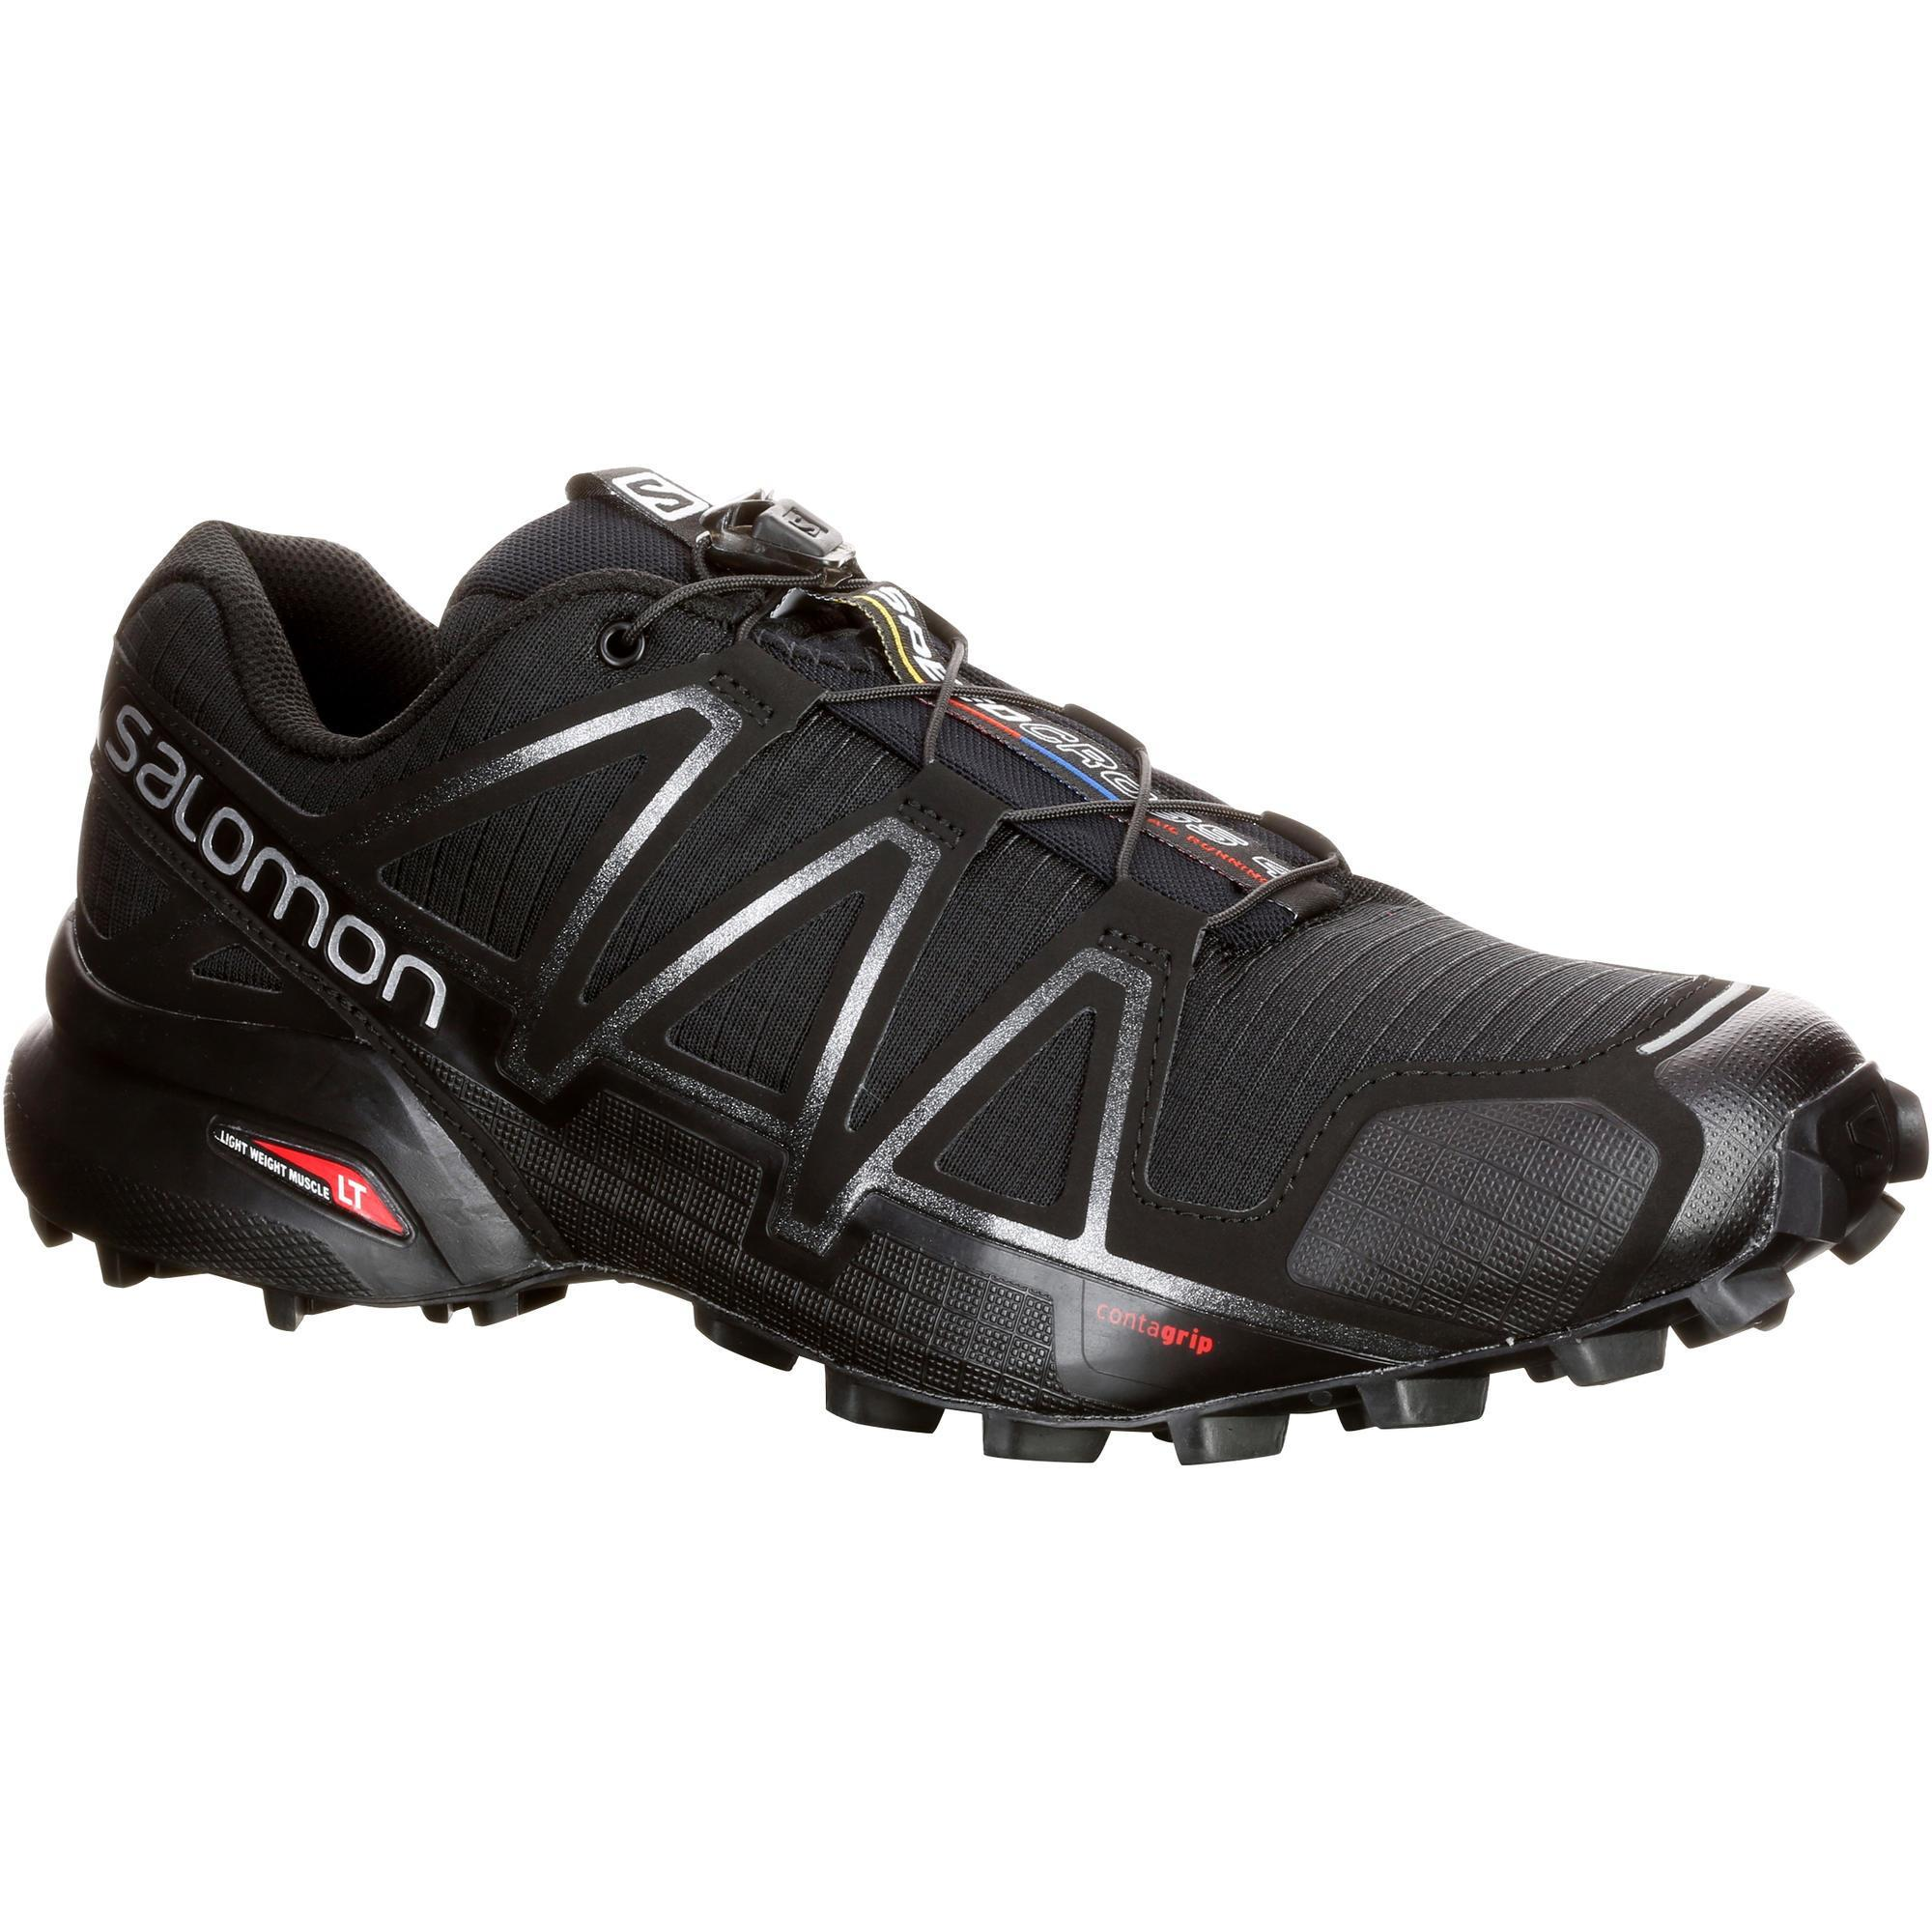 11c9e4a6f6a Salomon Trailschoenen heren Salomon Speedcross 4 zwart | Decathlon.nl